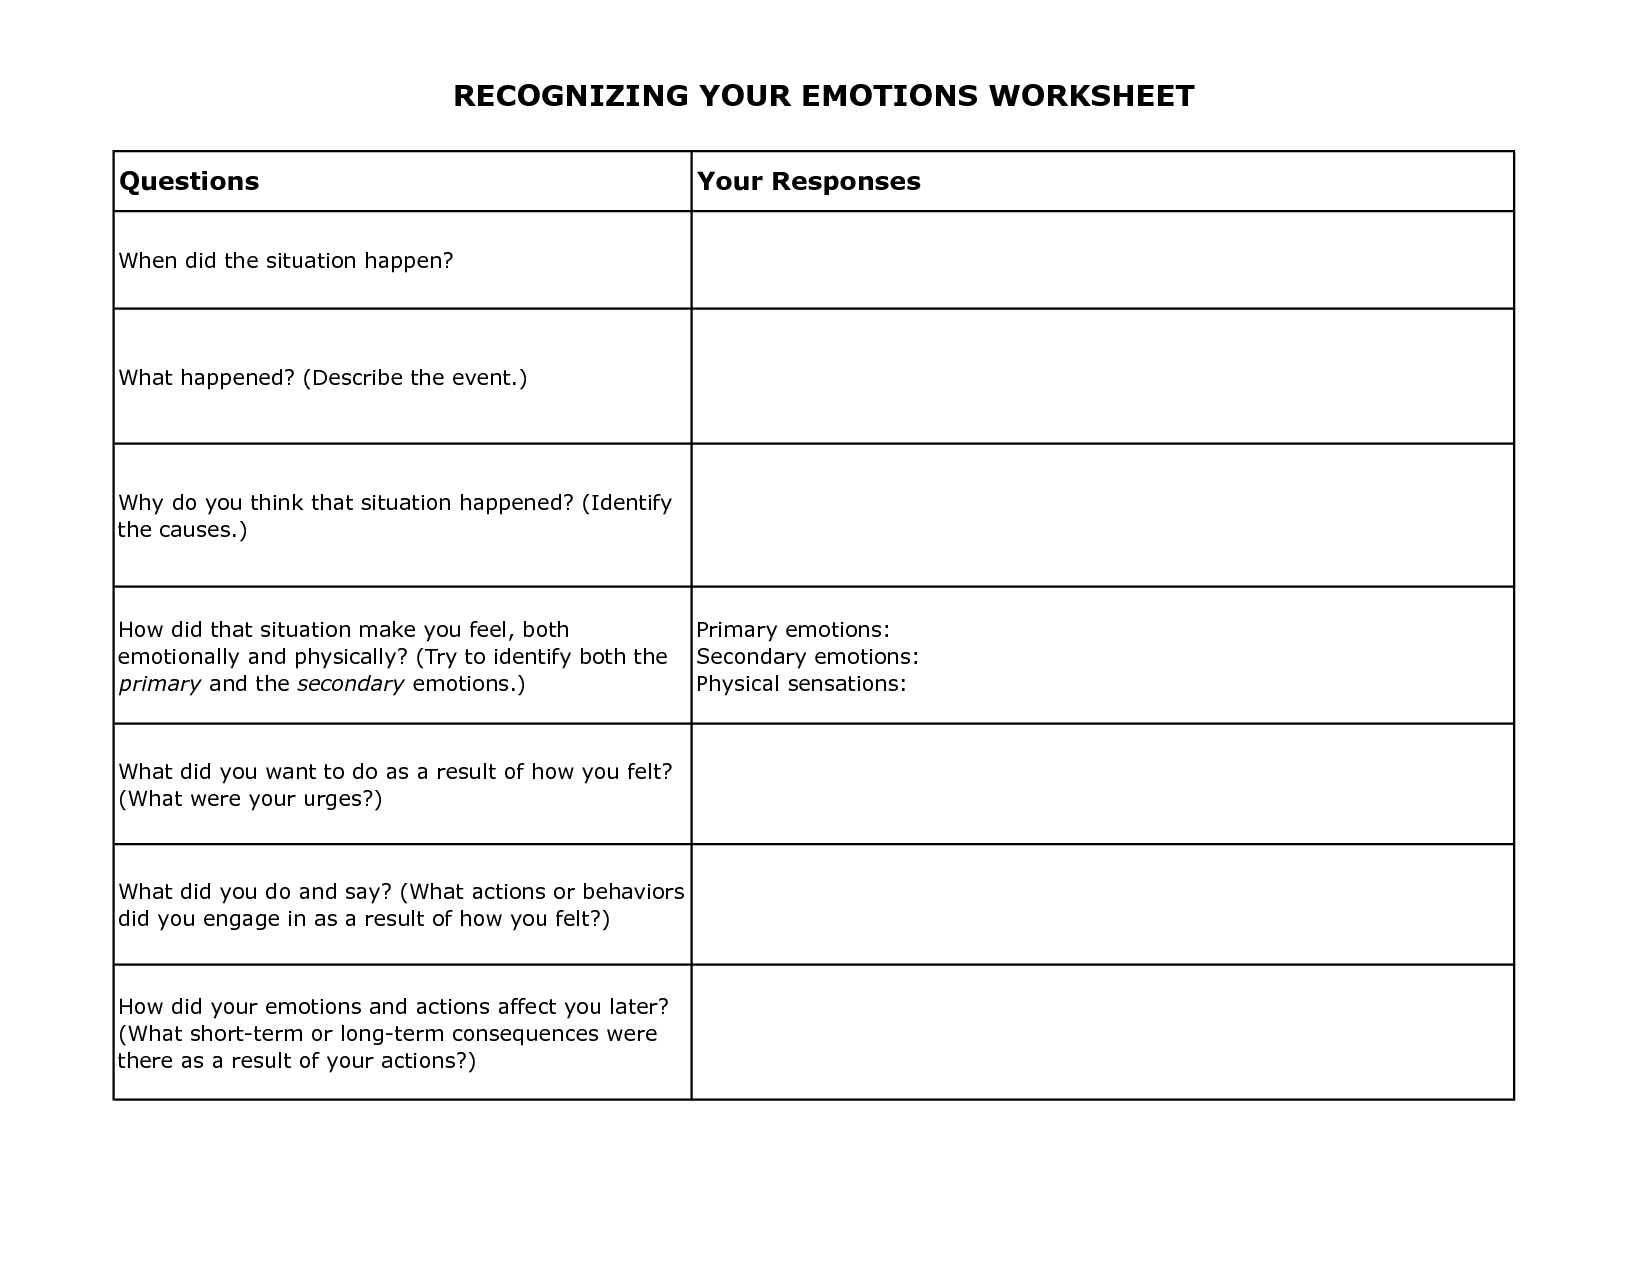 Free Printable Dbt Worksheets | Recognizing Your Emotions Worksheet | Free Printable Therapy Worksheets